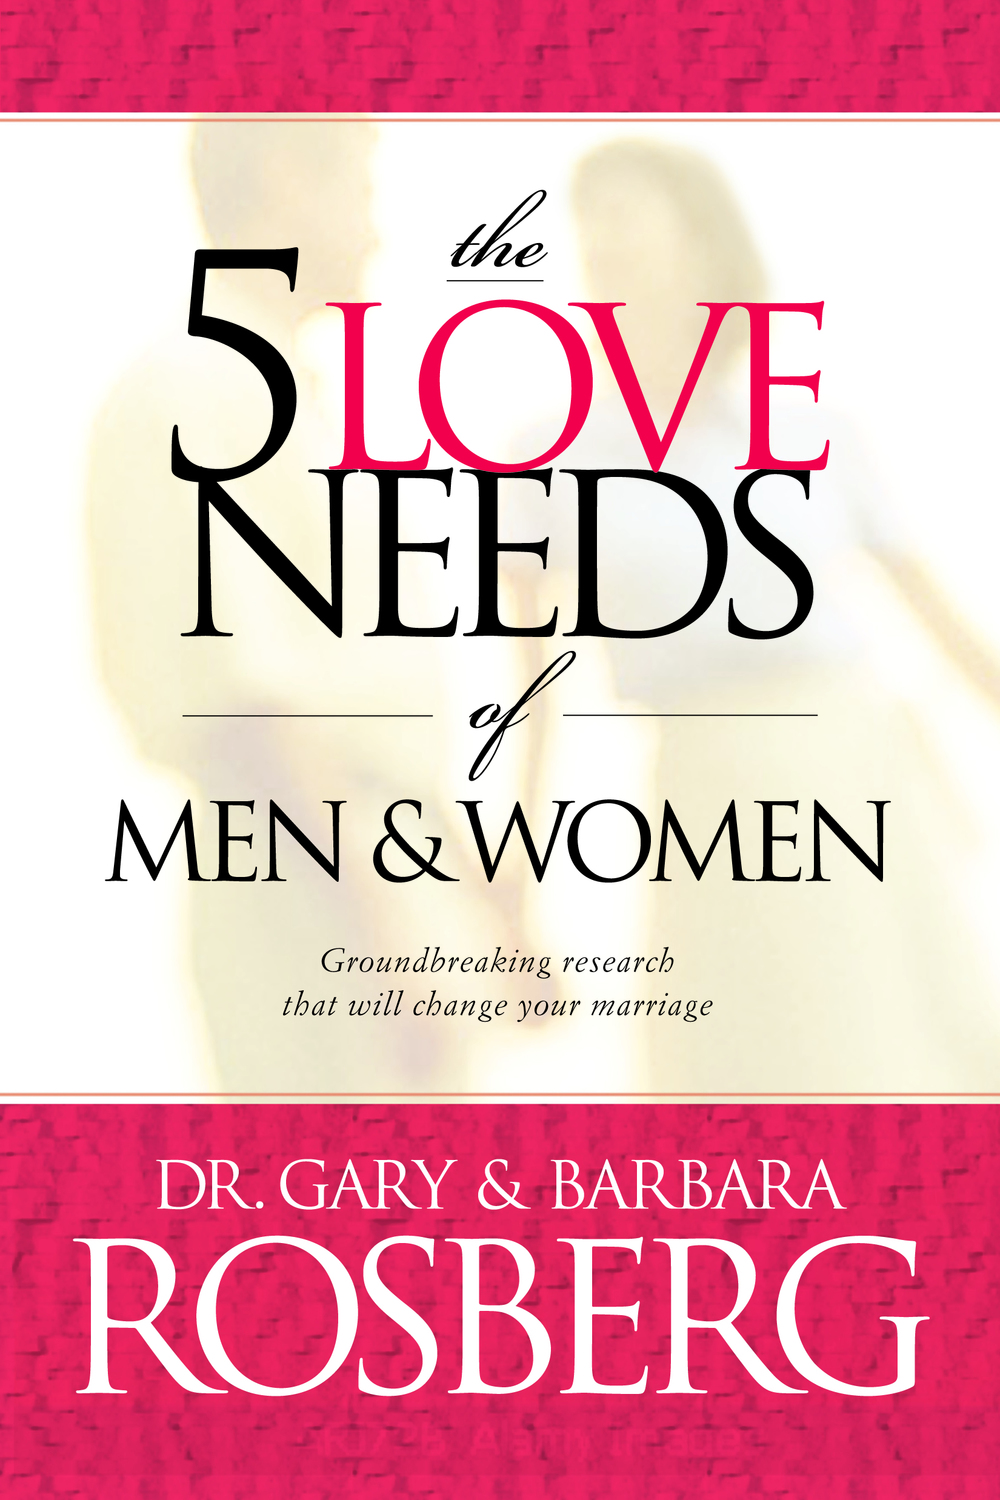 love-needs-of-men-and-women-gary-barb-rosberg-e-book-americas-family-coaches